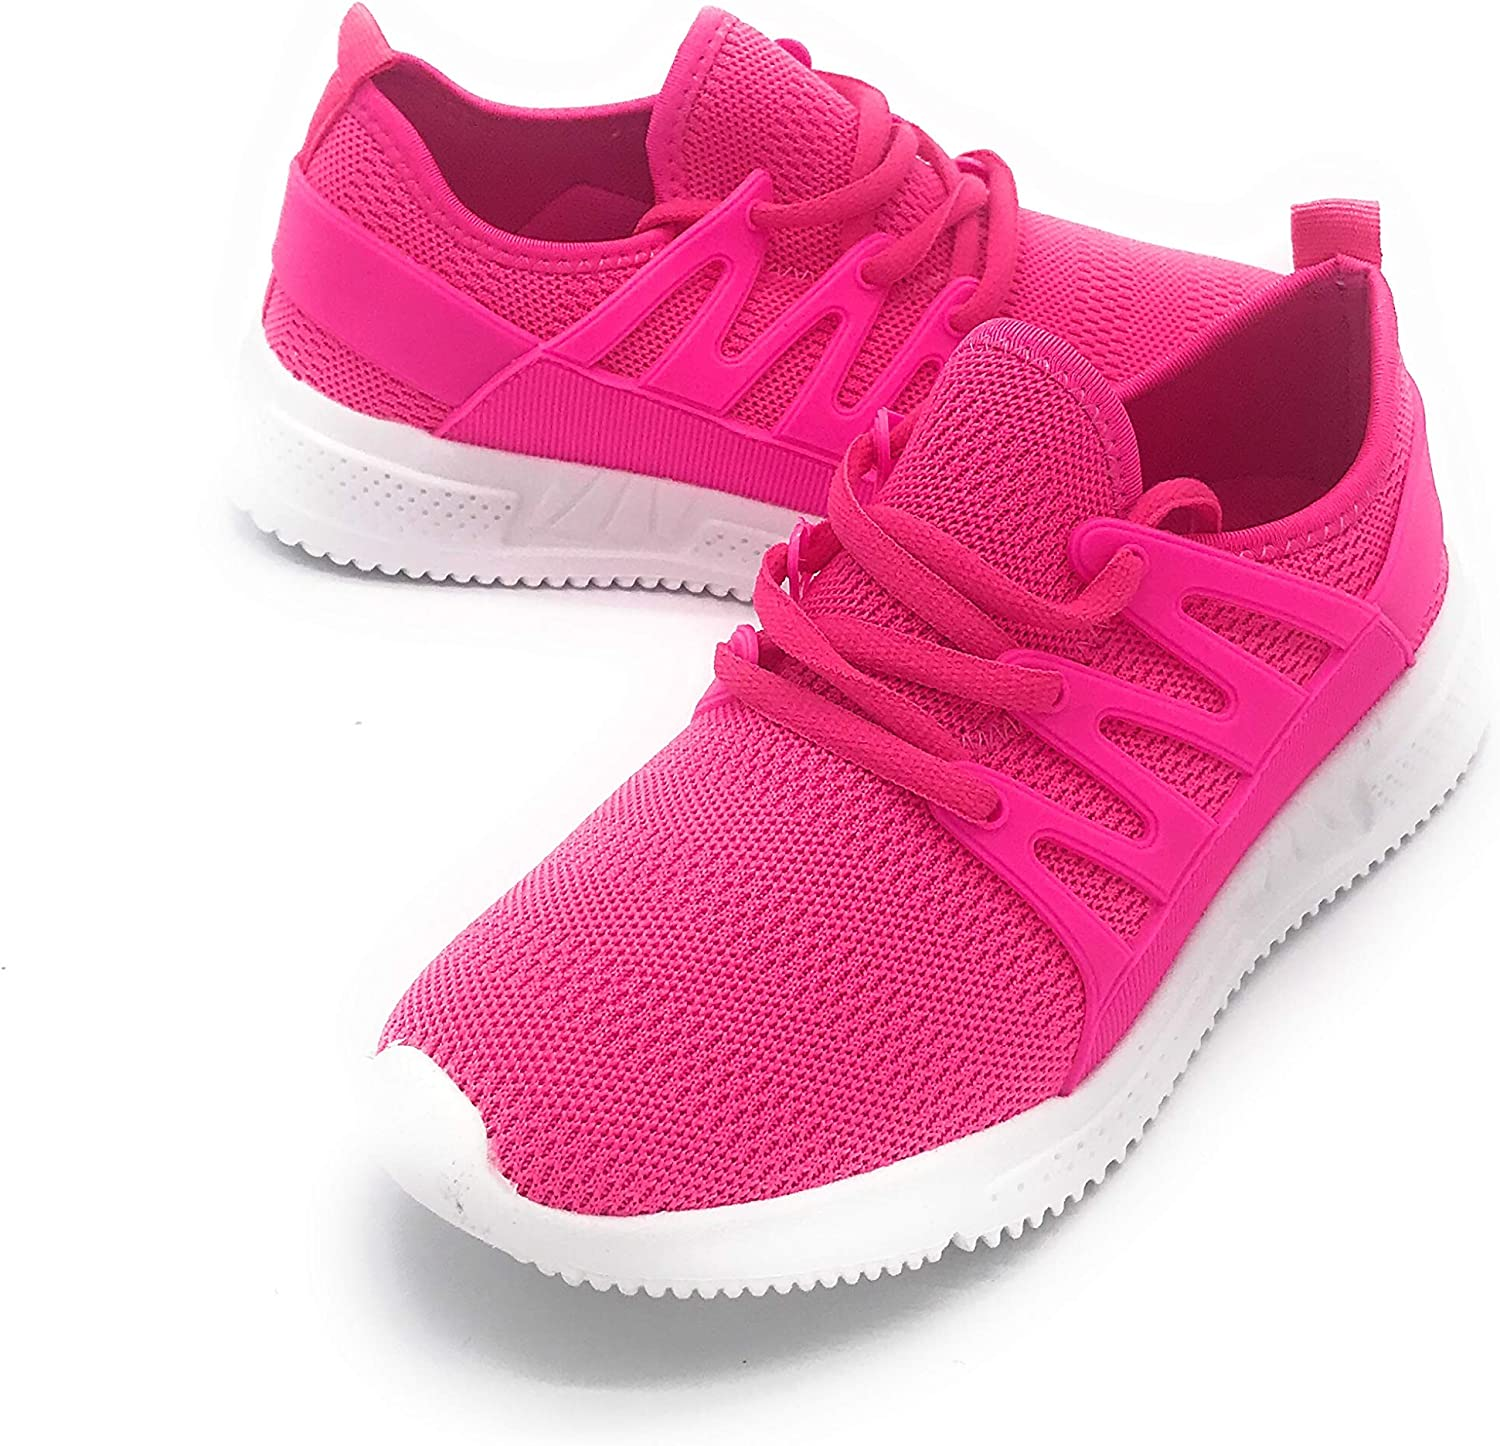 bluee Berry Women Breathable Light Weight Fashion Athletic Sport Walking shoes